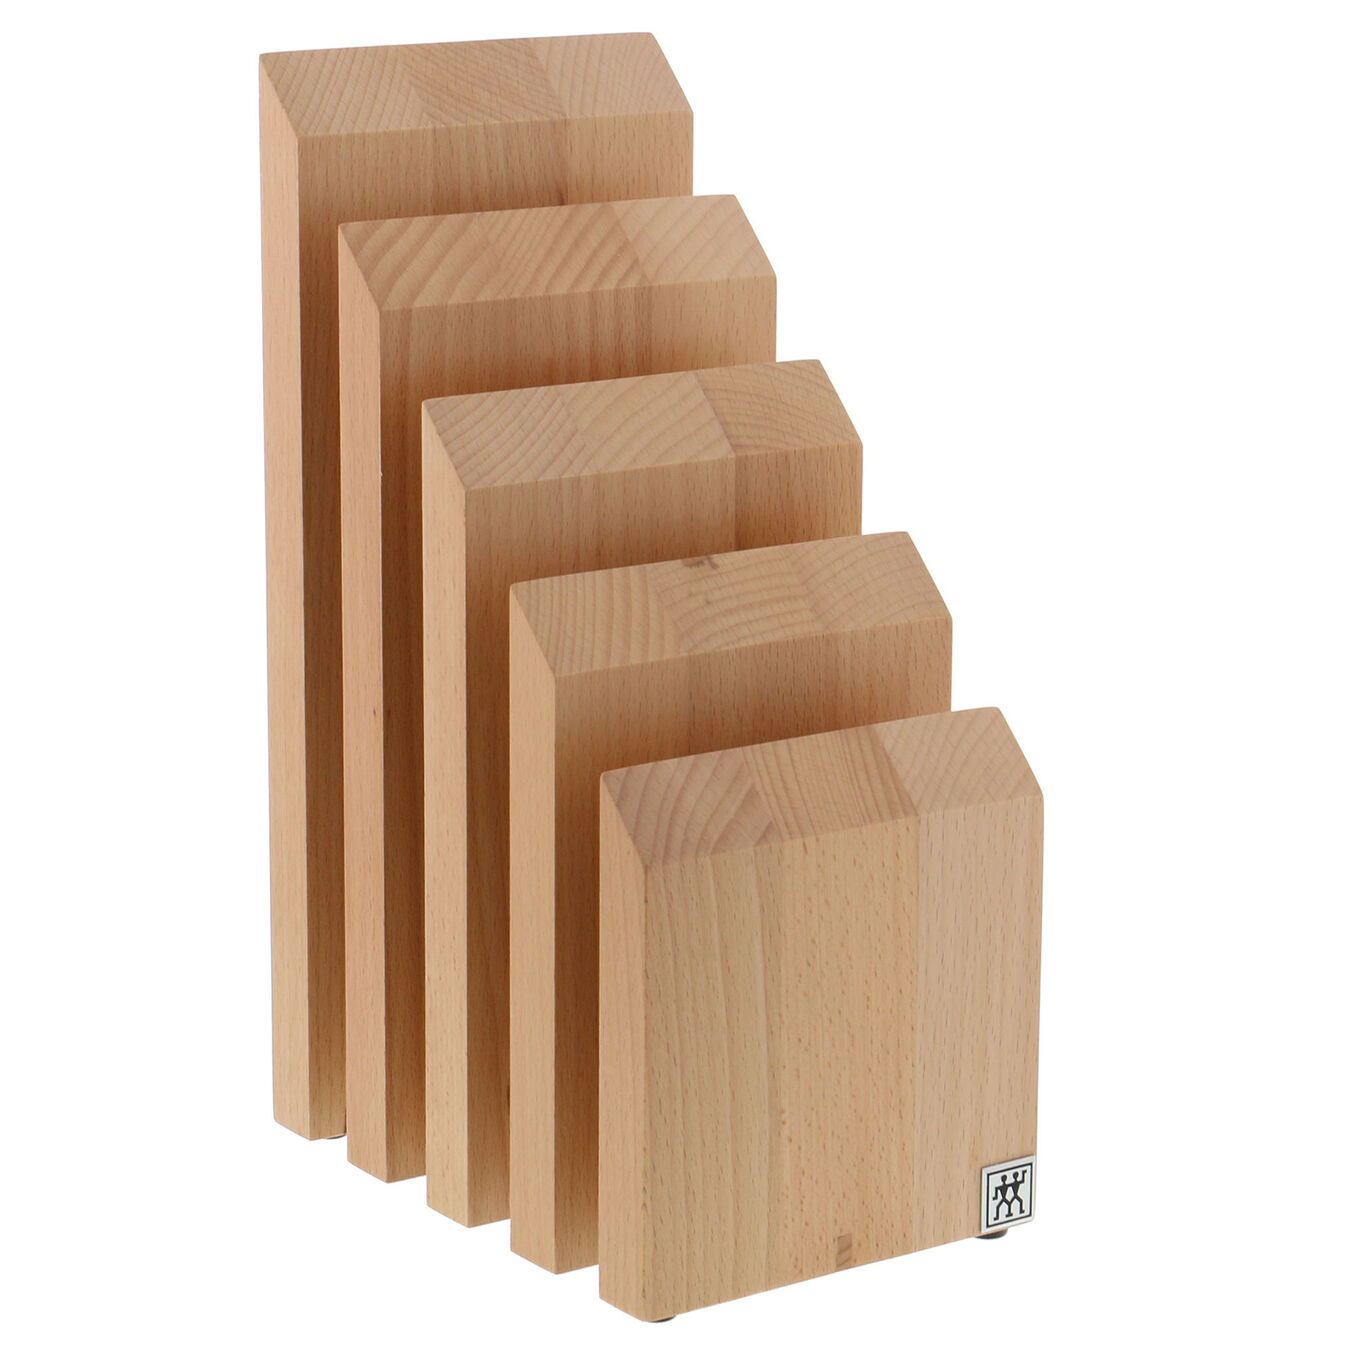 Beechwood, Knife block empty,,large 1